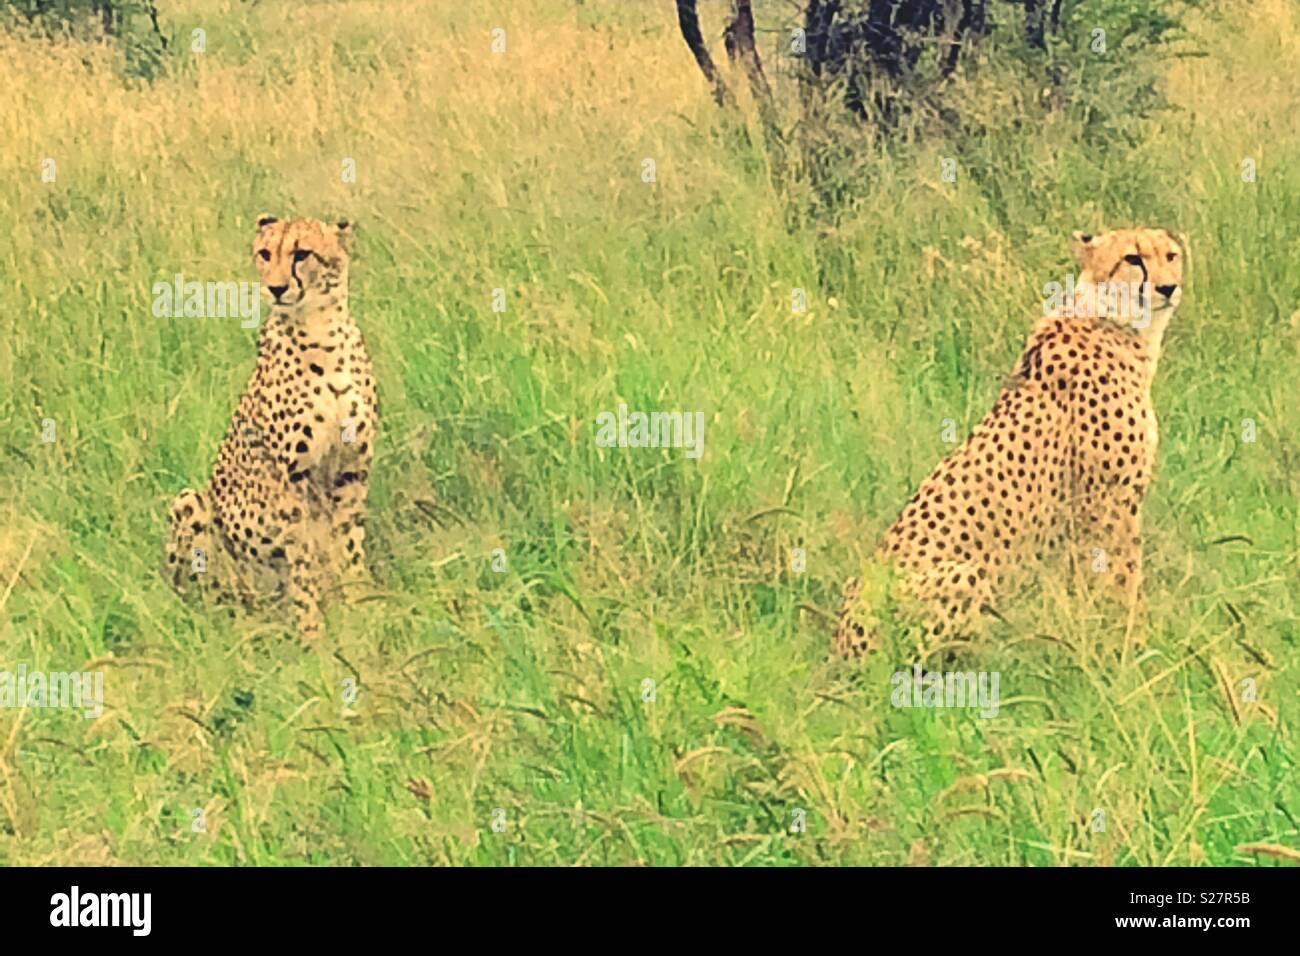 Cheetahs Sitting In Long Grass In The Wild At Madikwe Game